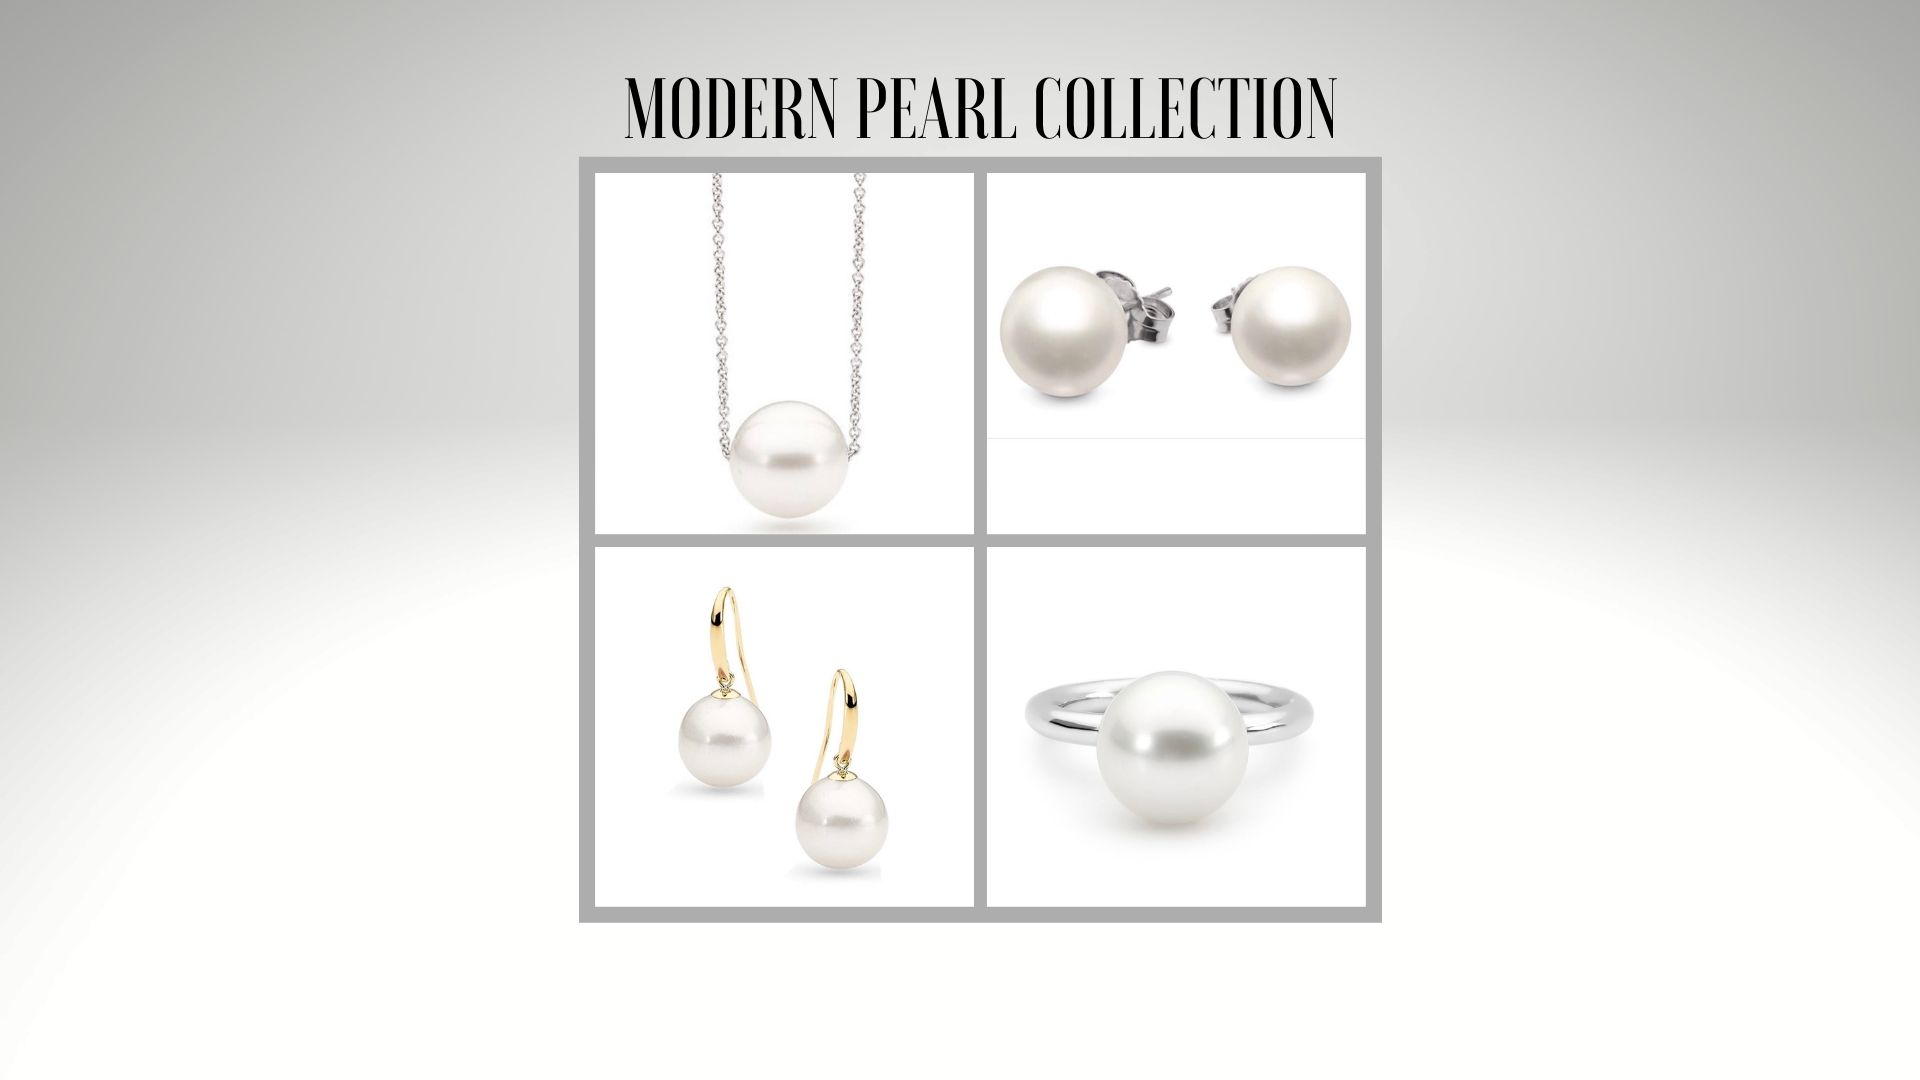 Modern Pearl Collection